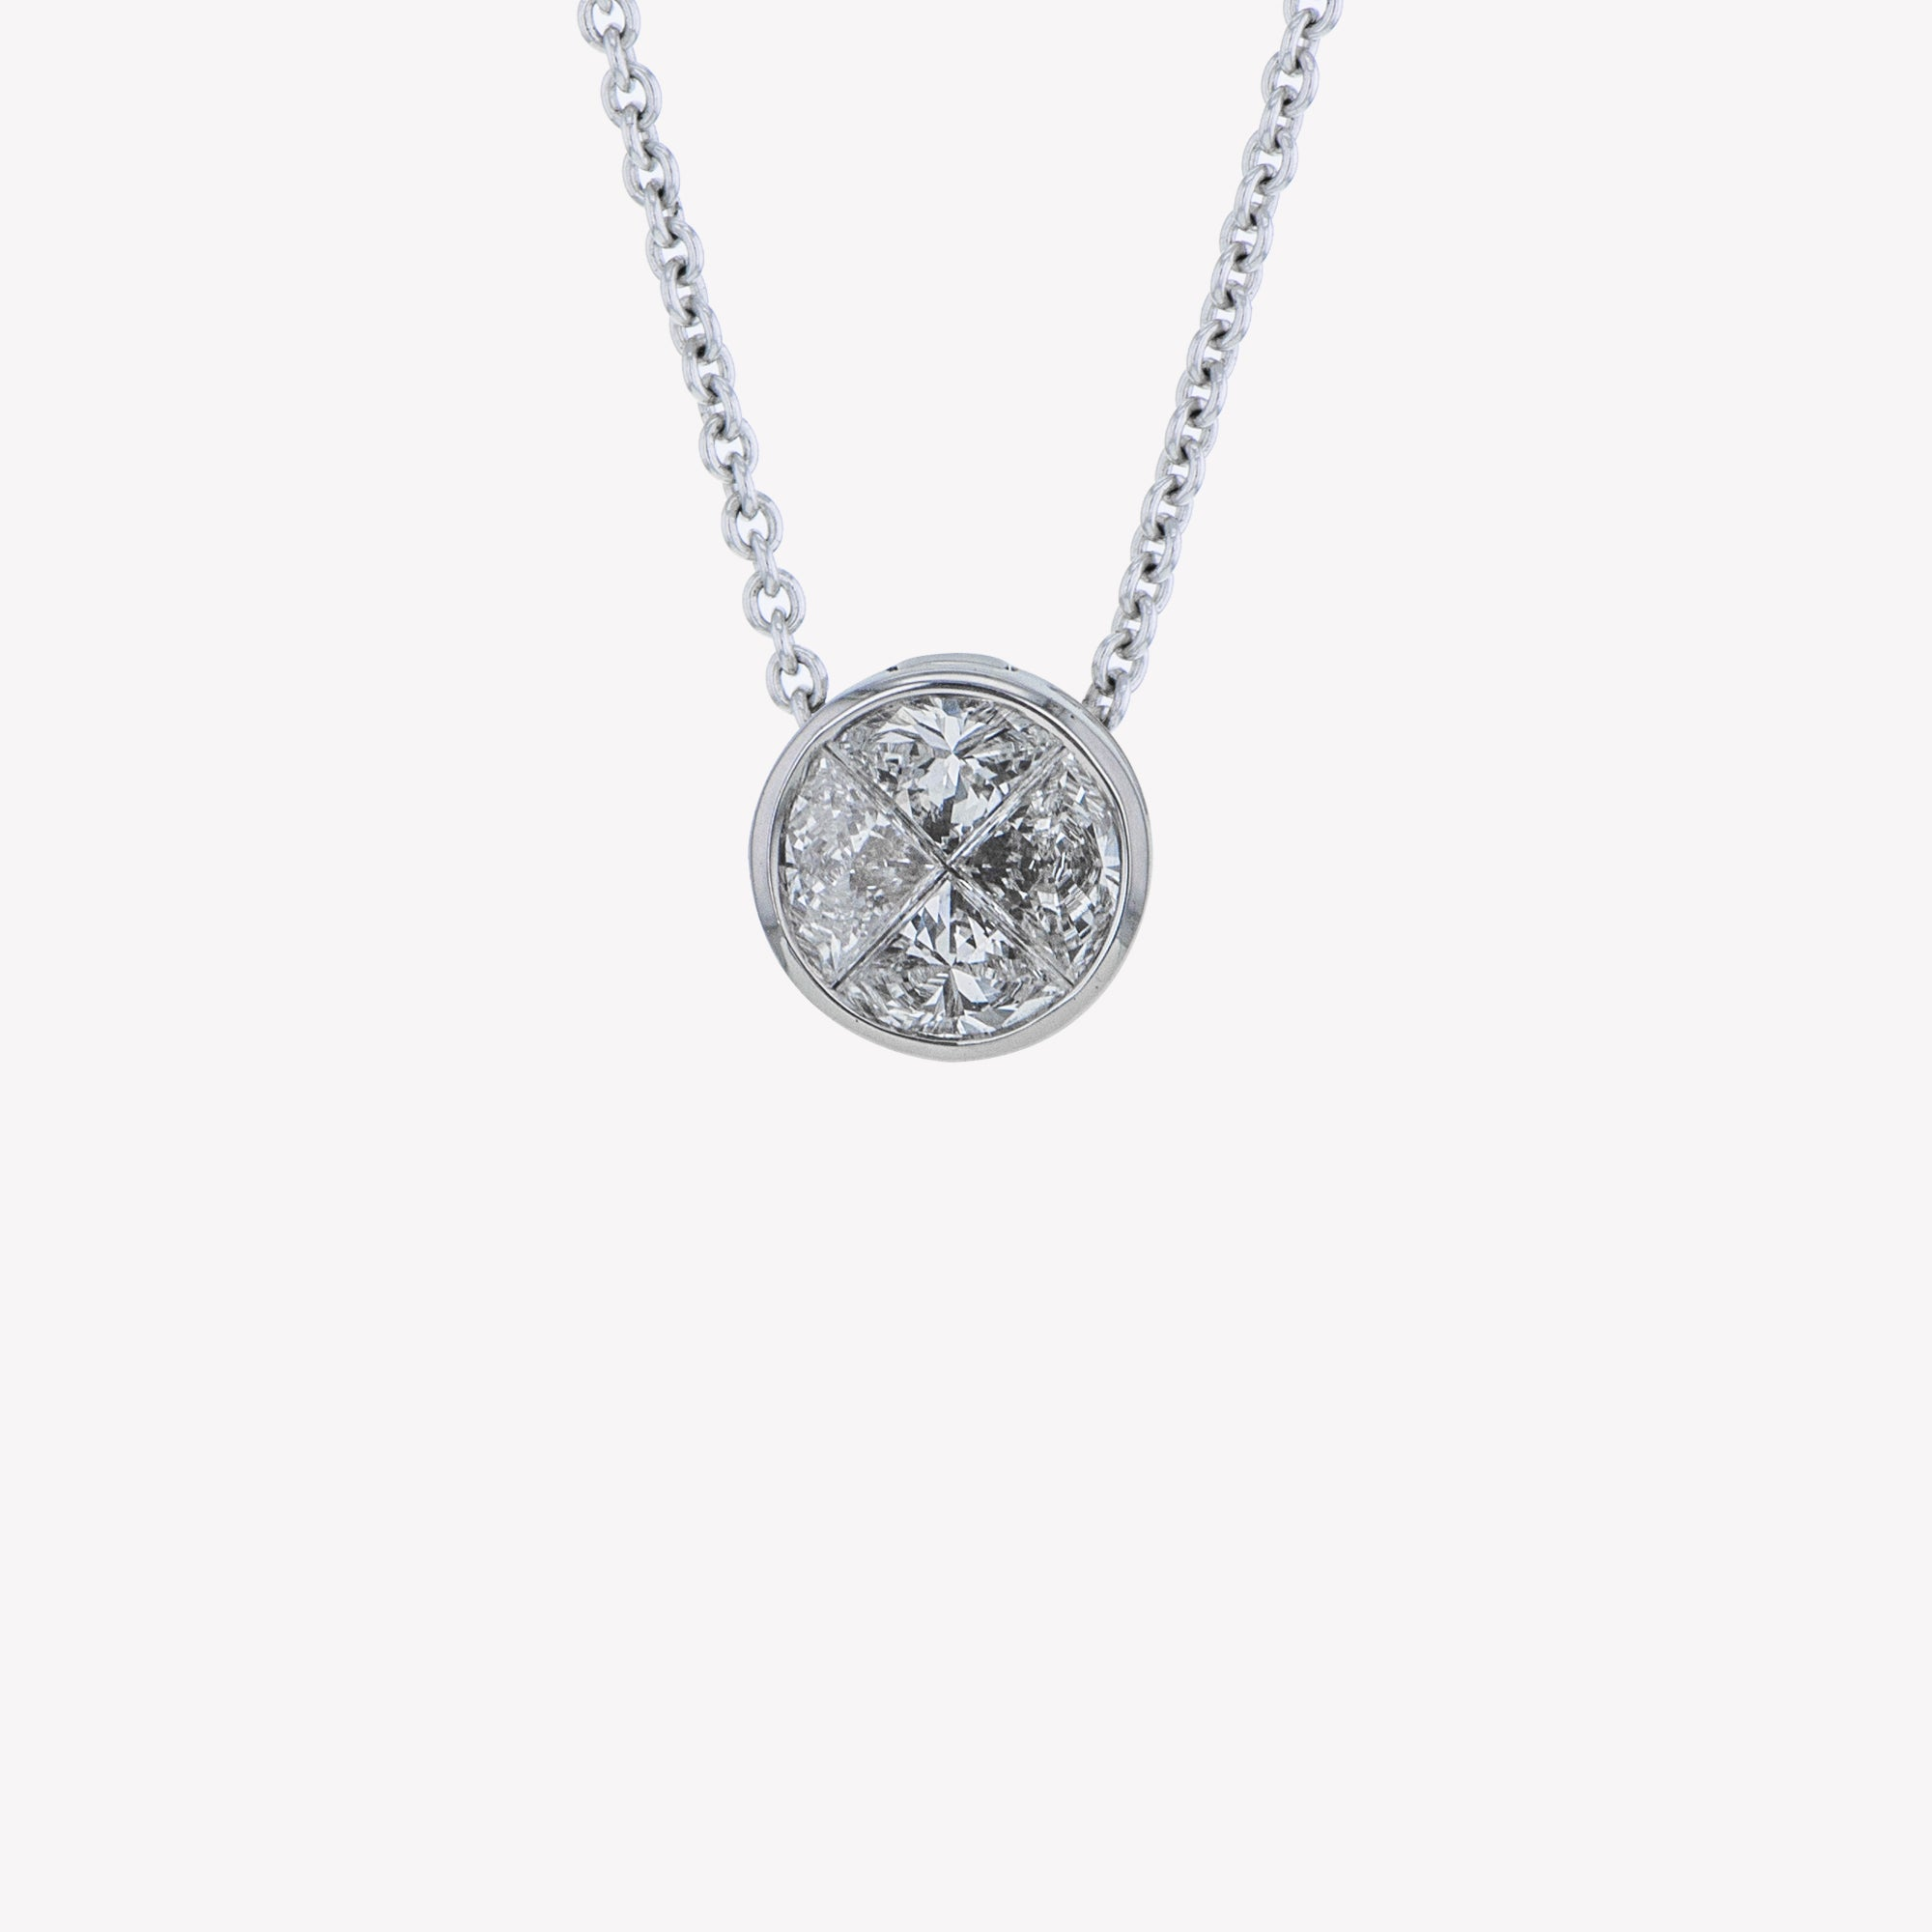 Detachable White Gold Round Head with Chain